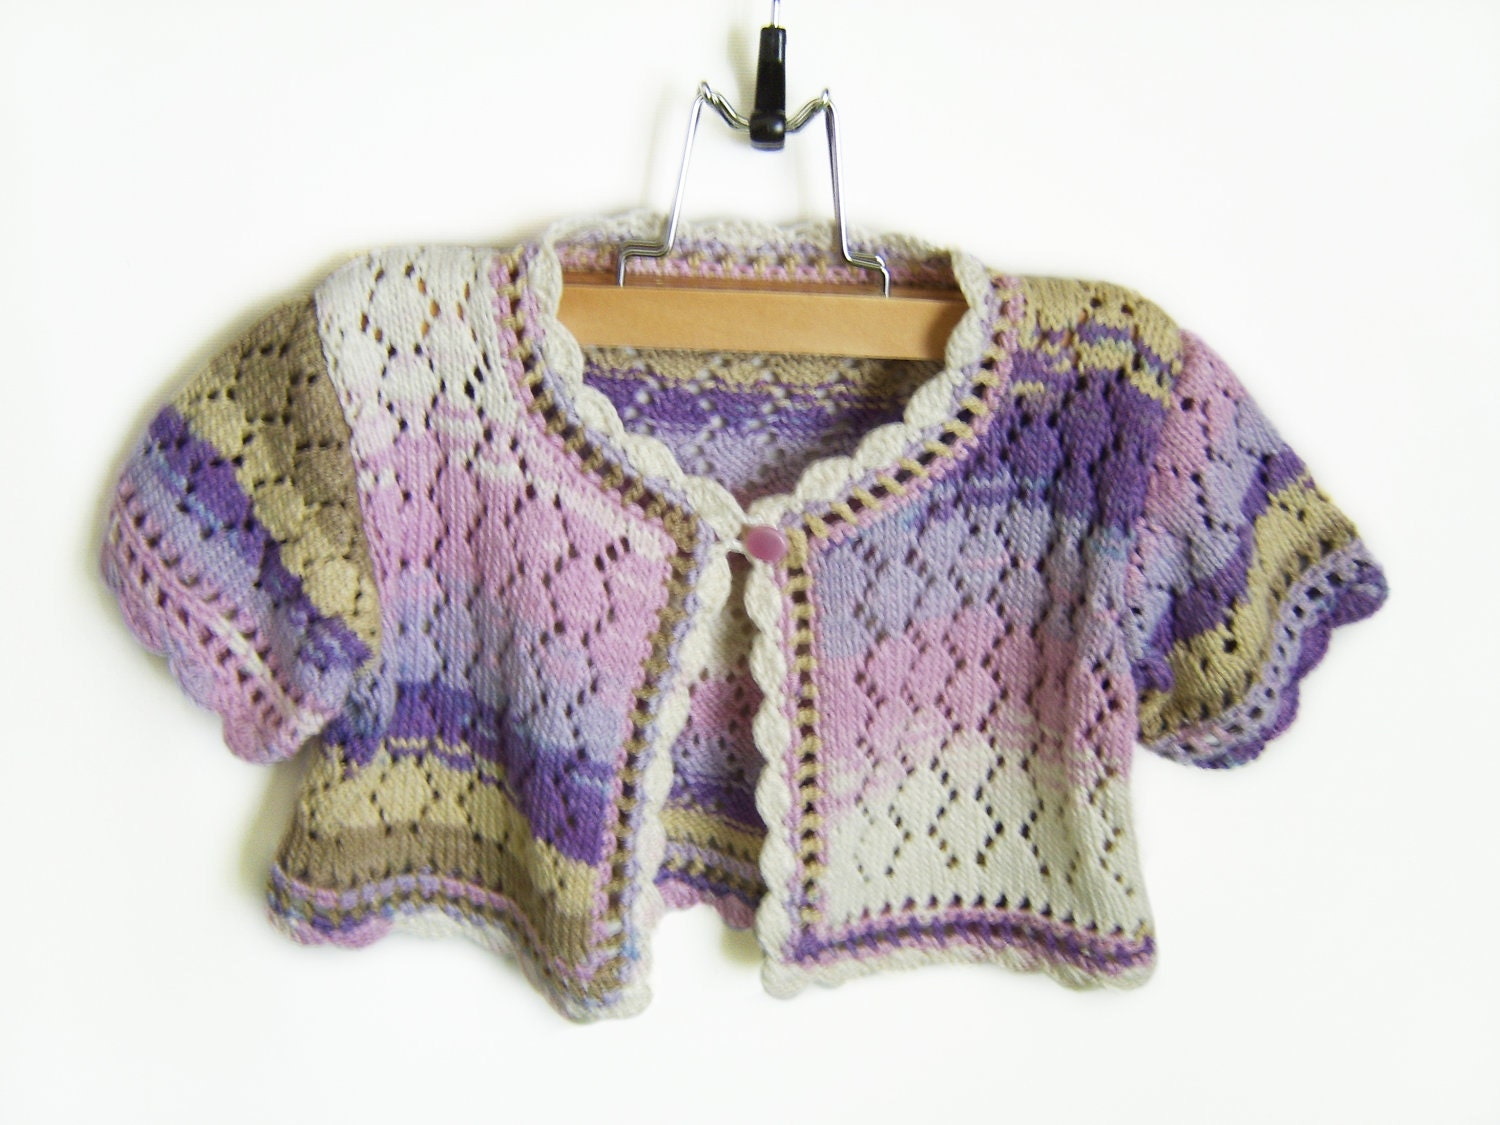 Knitted Baby Bolero Jacket - Lavender, 2 - 3 years - SasasHandcrafts